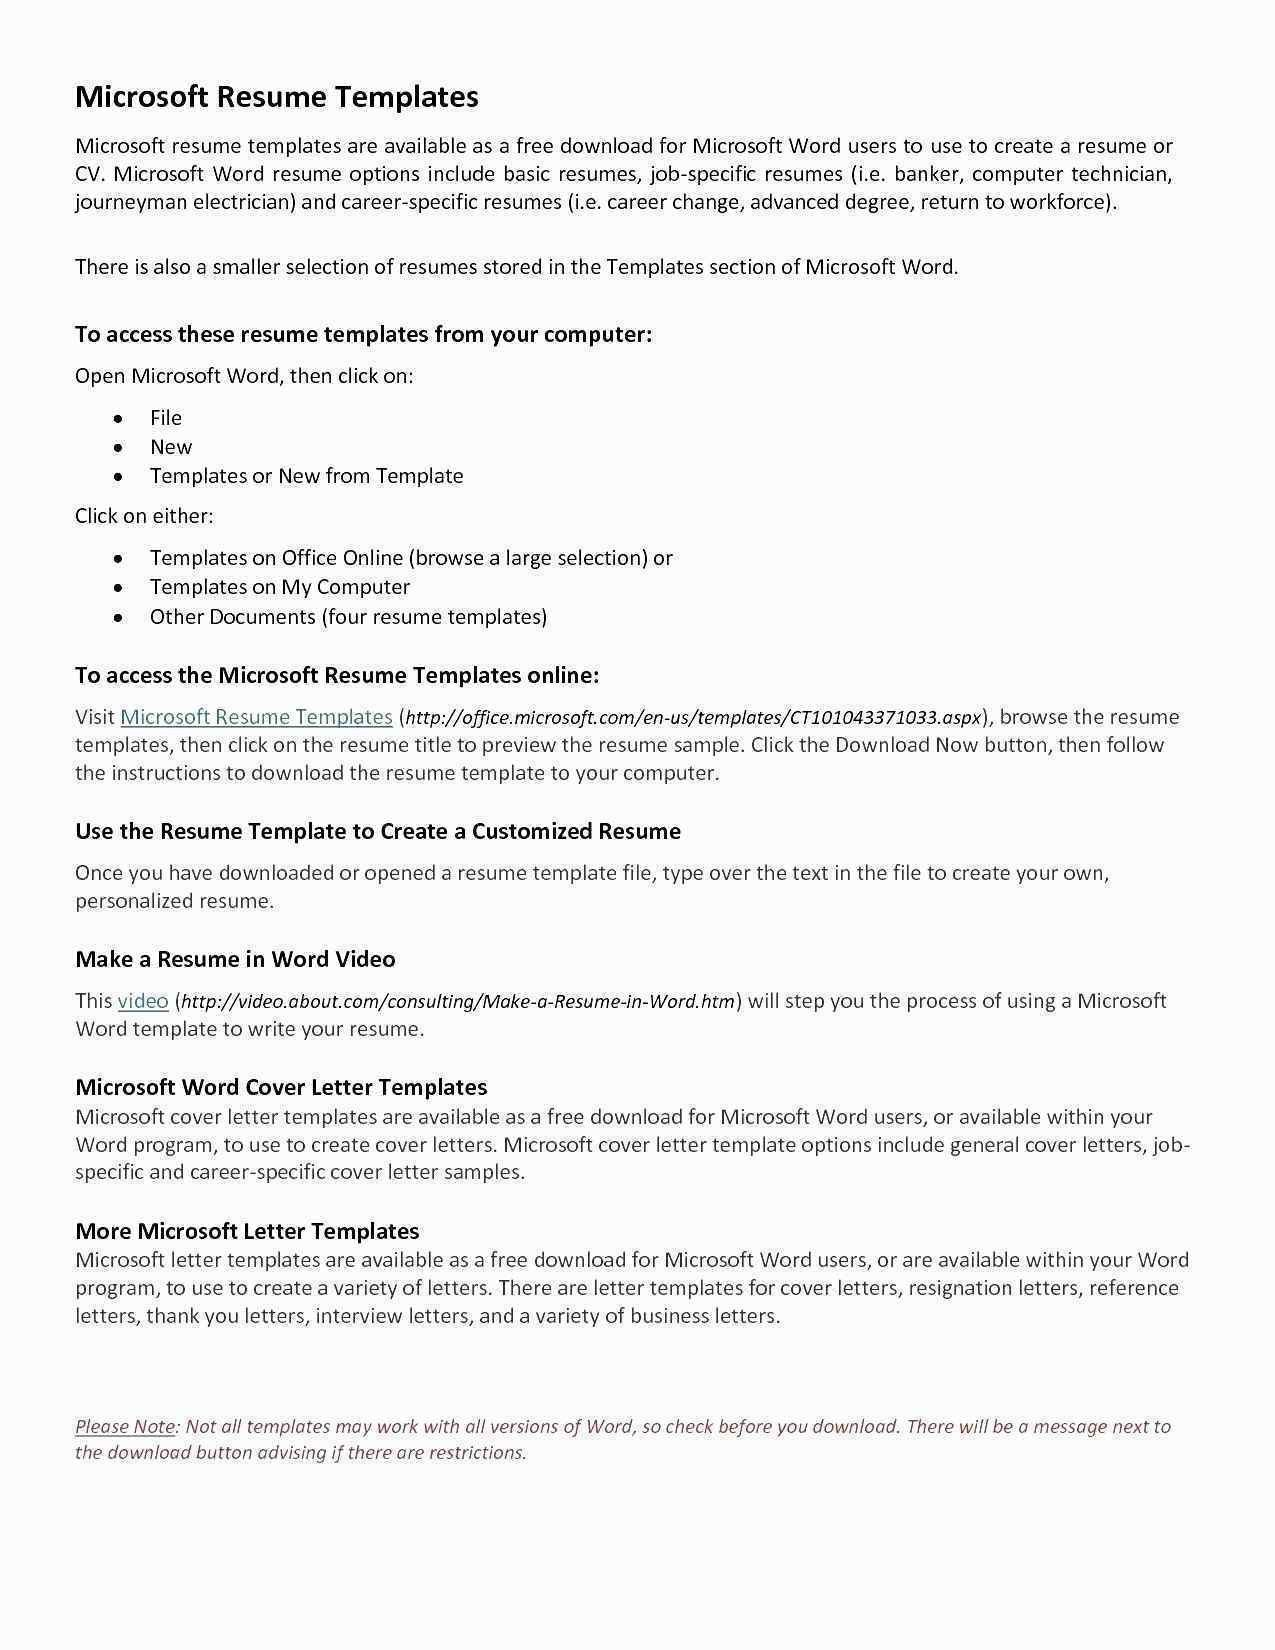 Download New Free Template For Cover Letter For Job Application At Http W Cover Letter For Resume Microsoft Word Resume Template Downloadable Resume Template